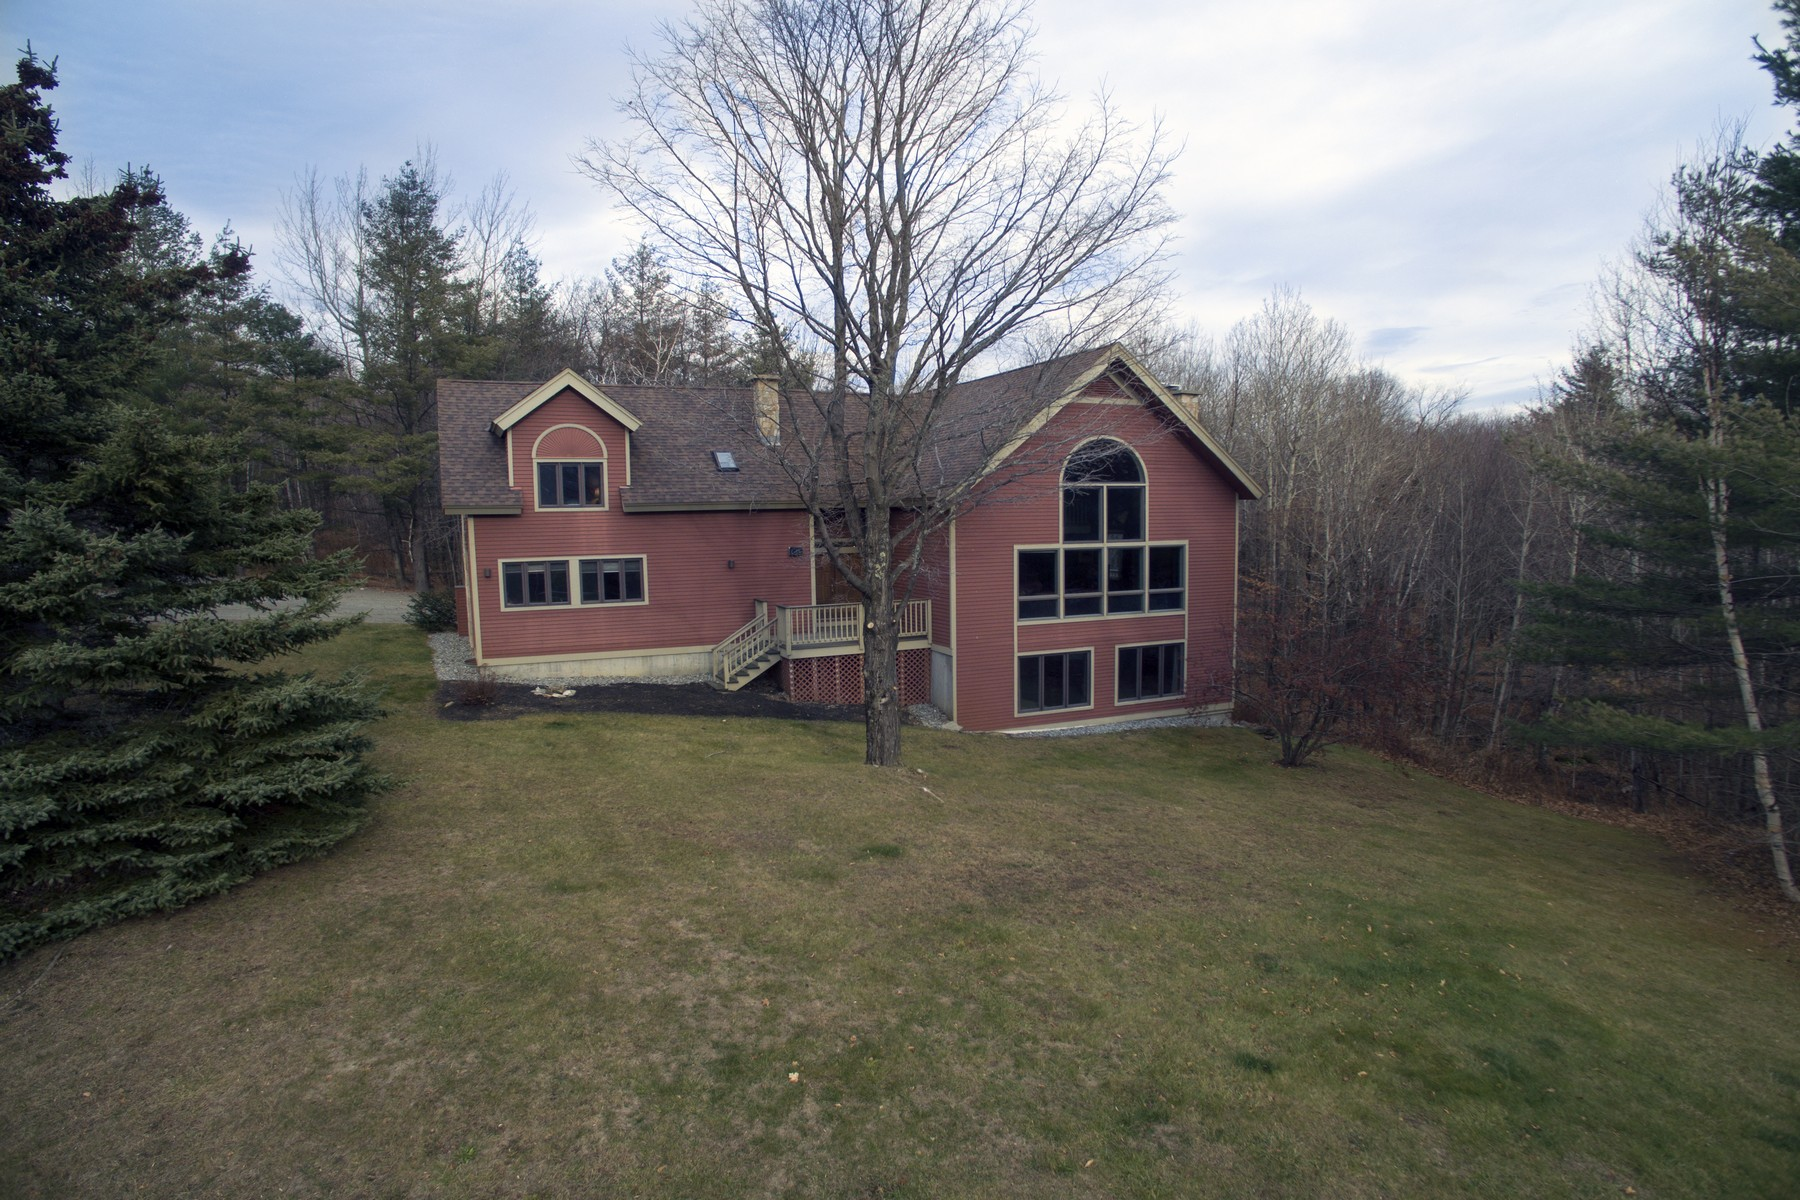 Casa Unifamiliar por un Venta en 106 High Meadow Road, Winhall 106 High Meadow Rd Winhall, Vermont, 05340 Estados Unidos